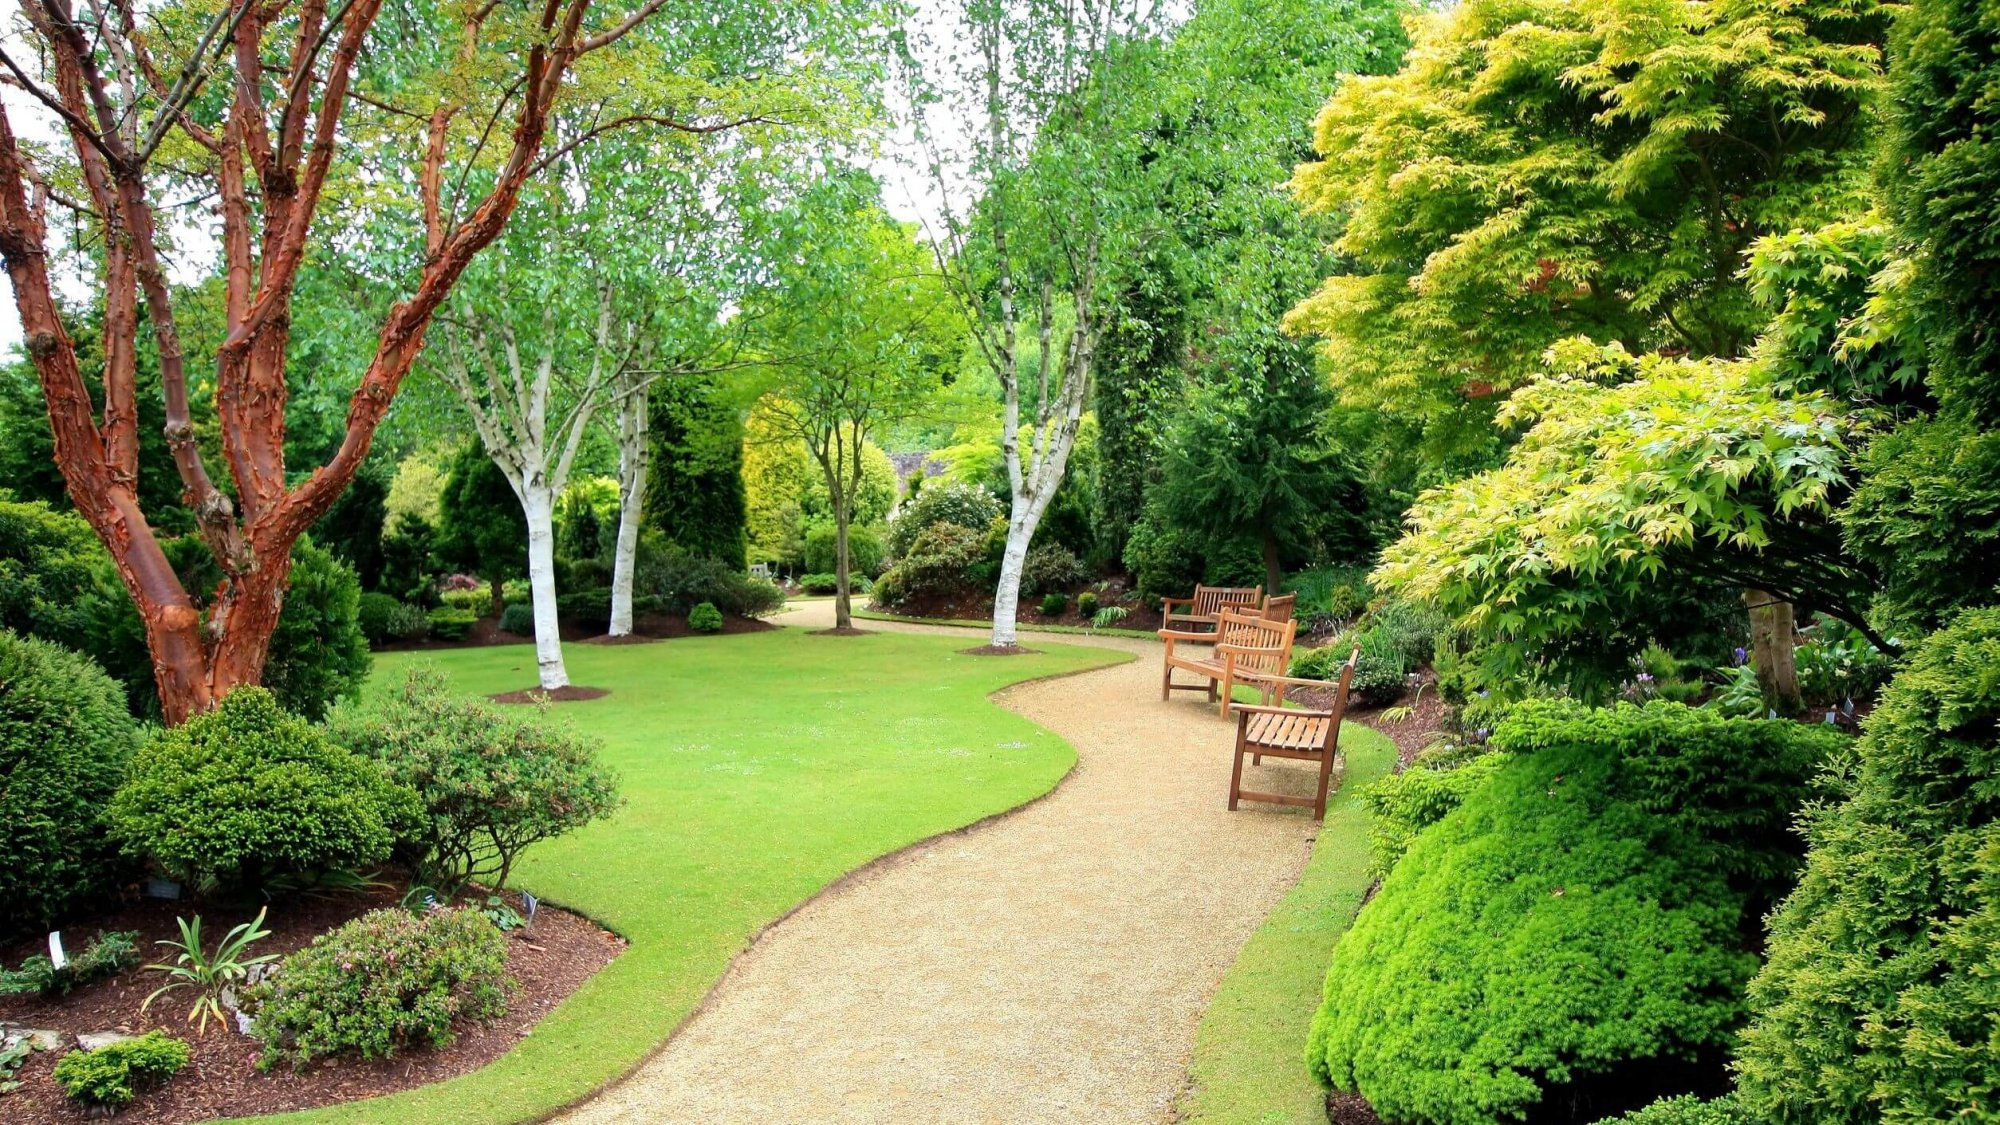 Garden with trees and benches